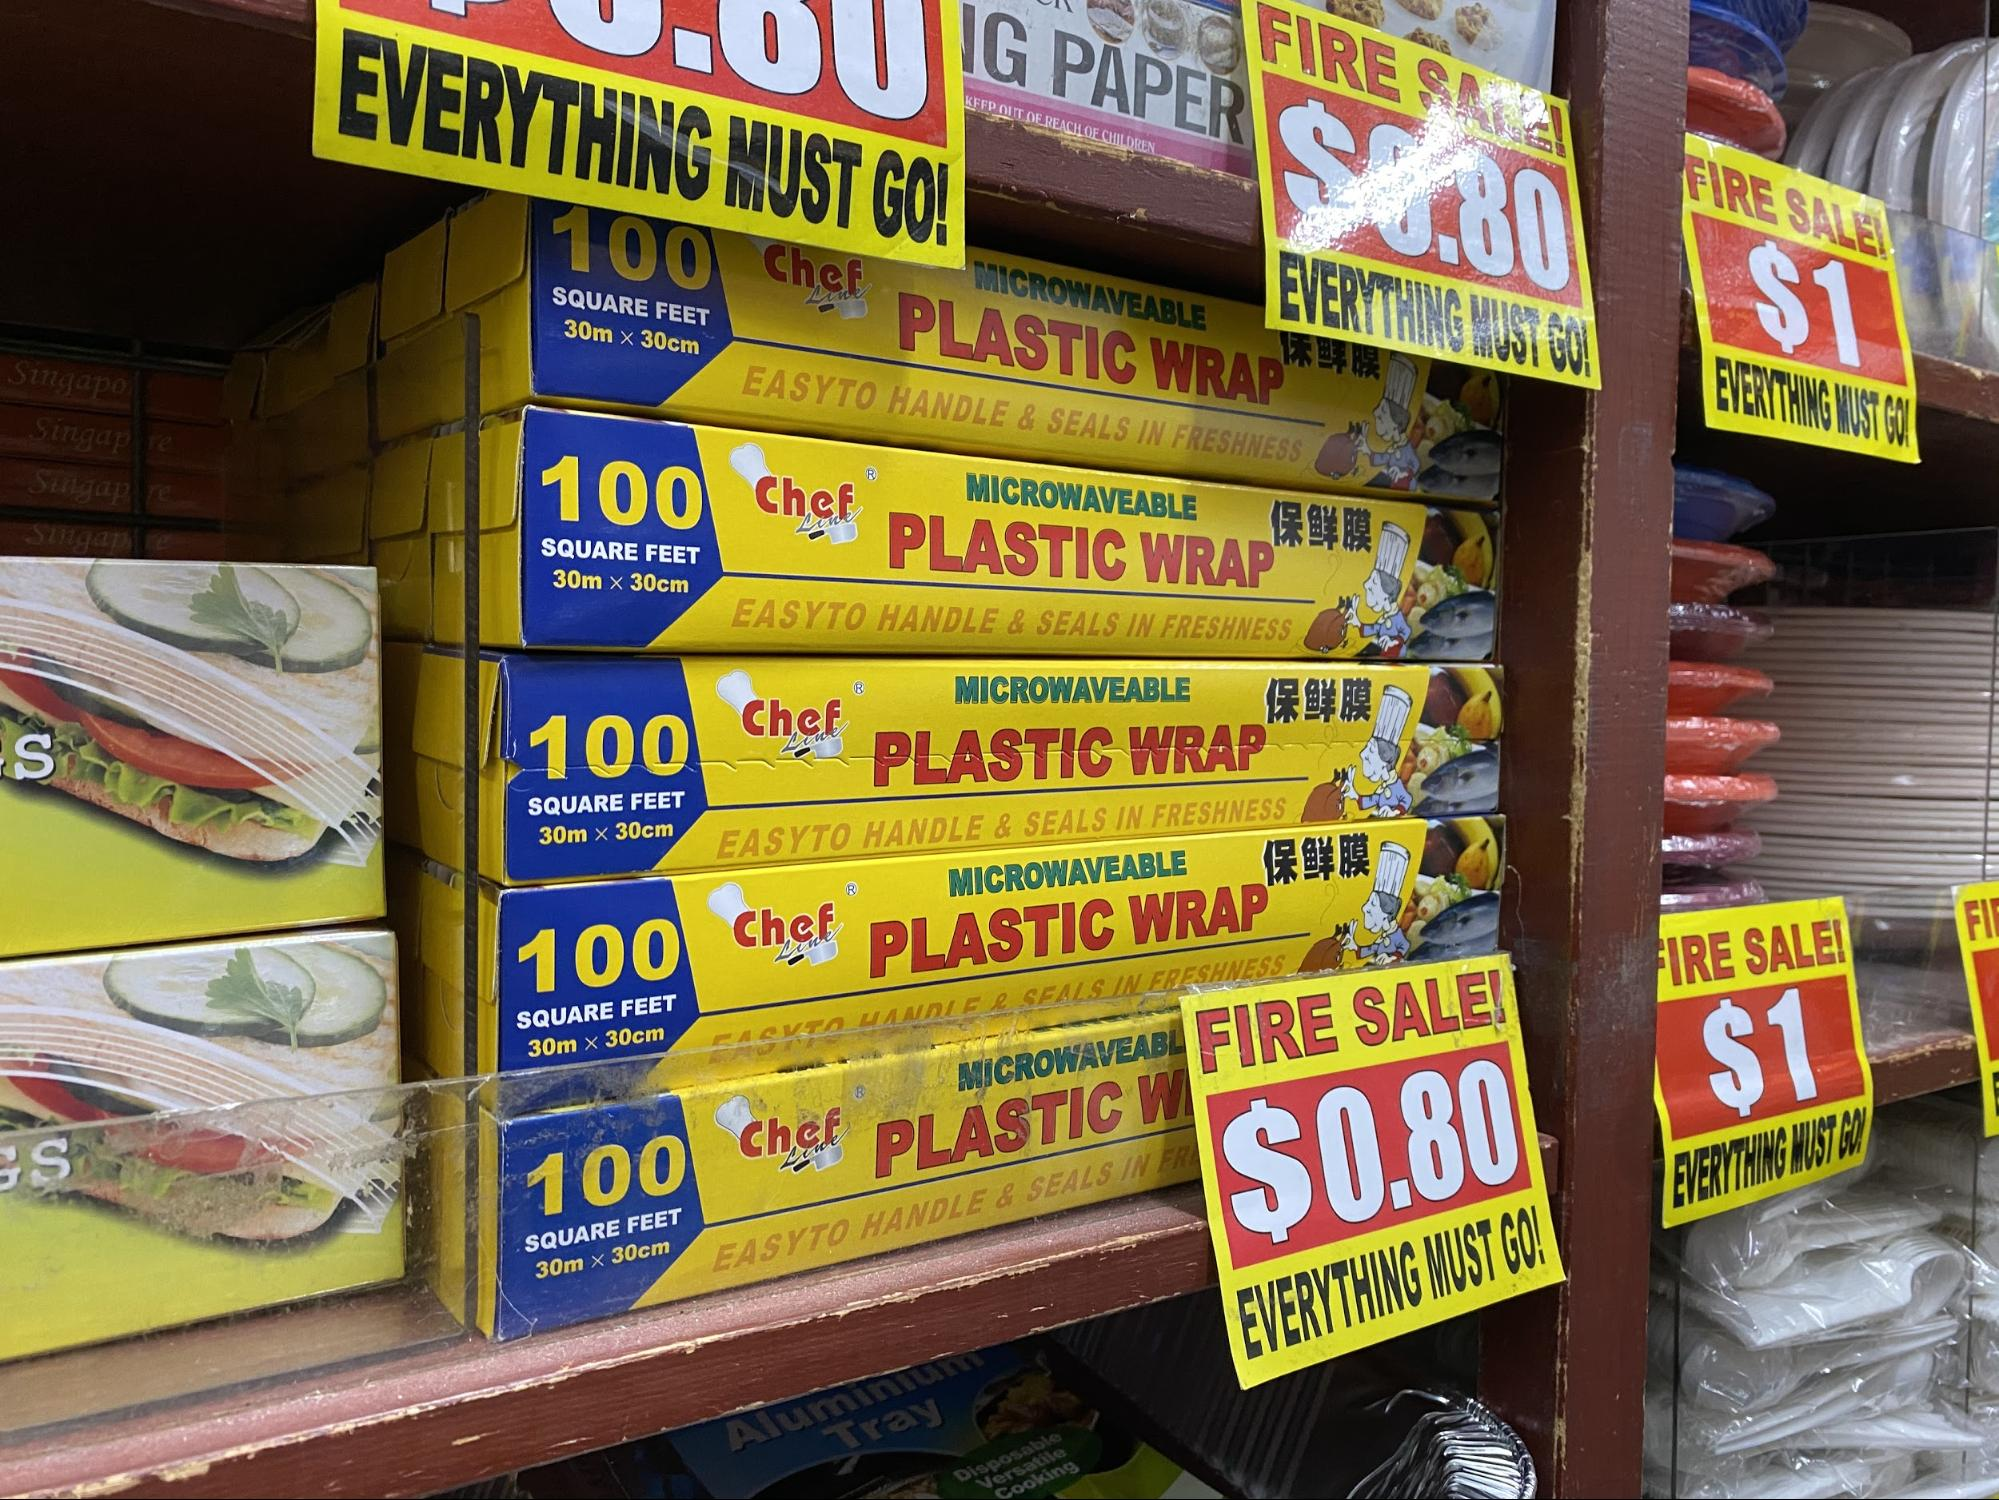 Plastic wrap at the Value Dollar store.